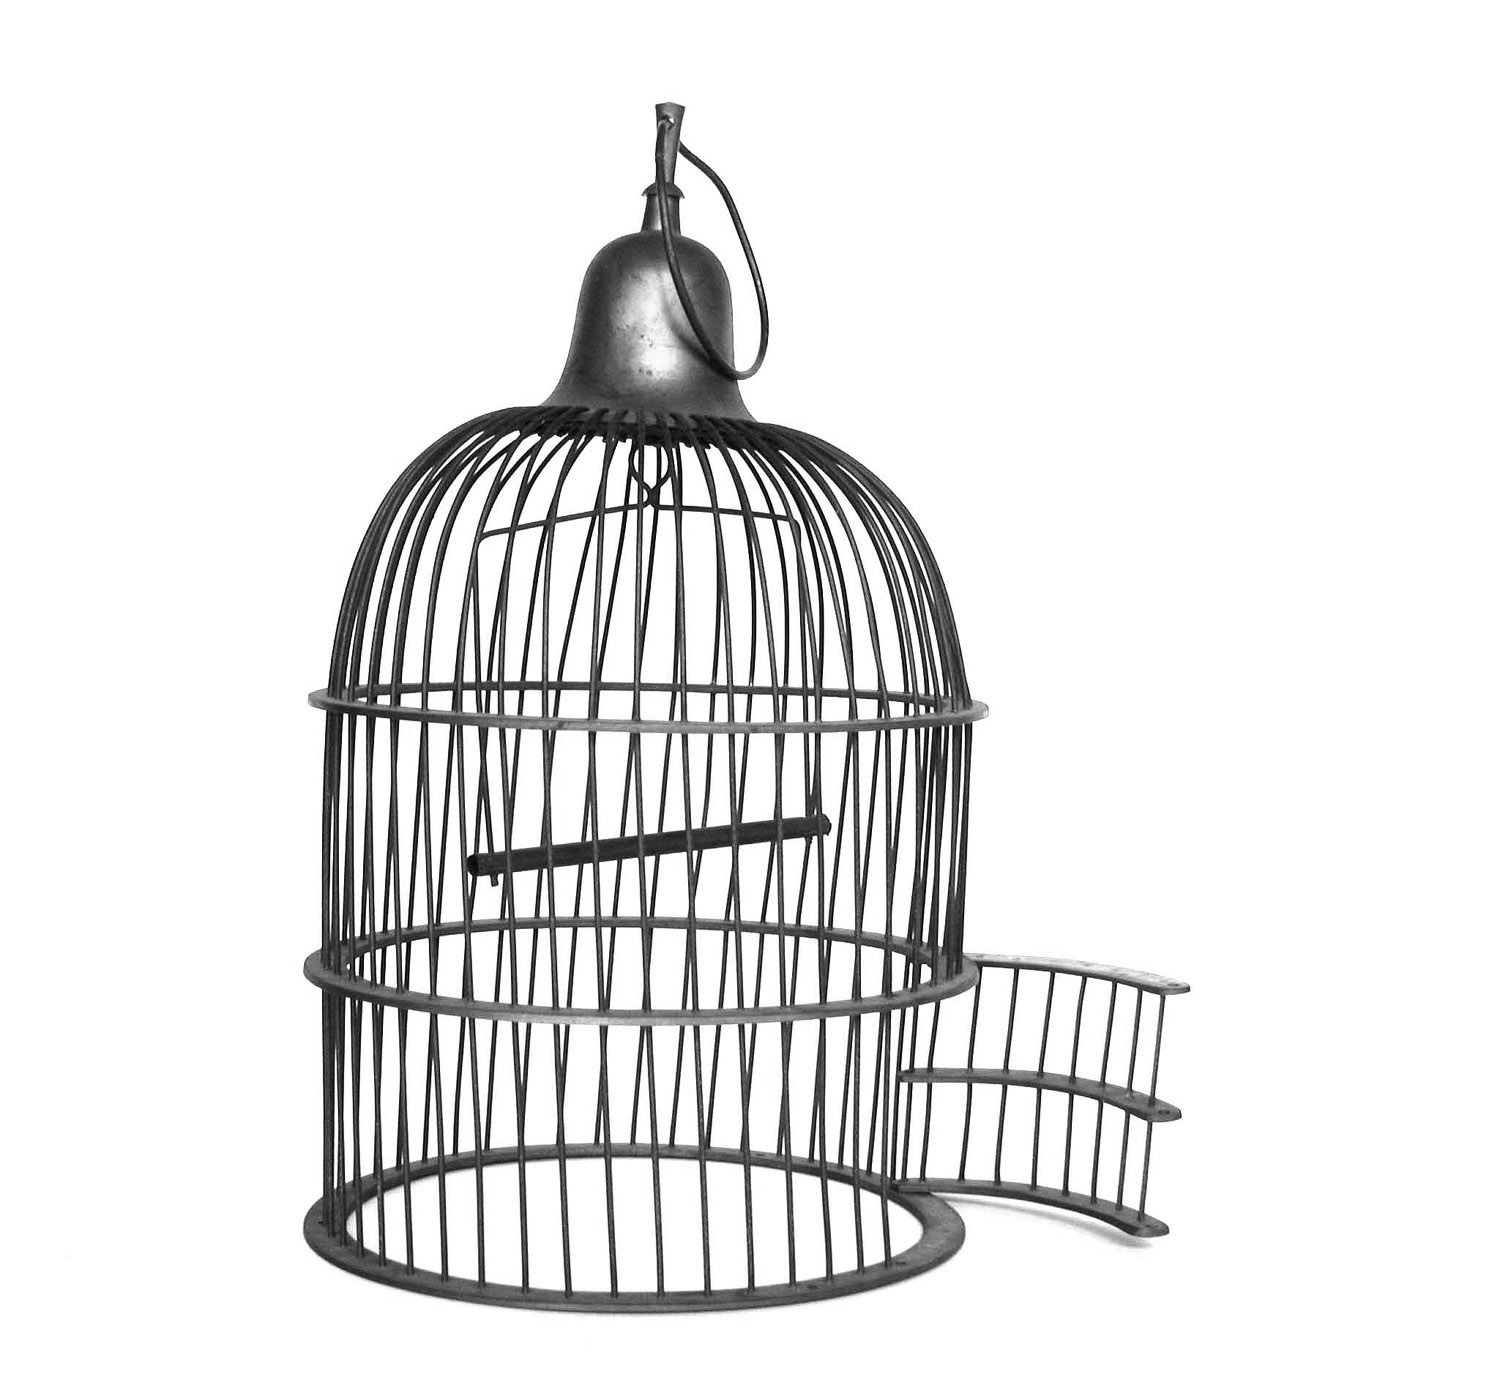 Christian Internet Forwards The Rest Of The Birdcage Story